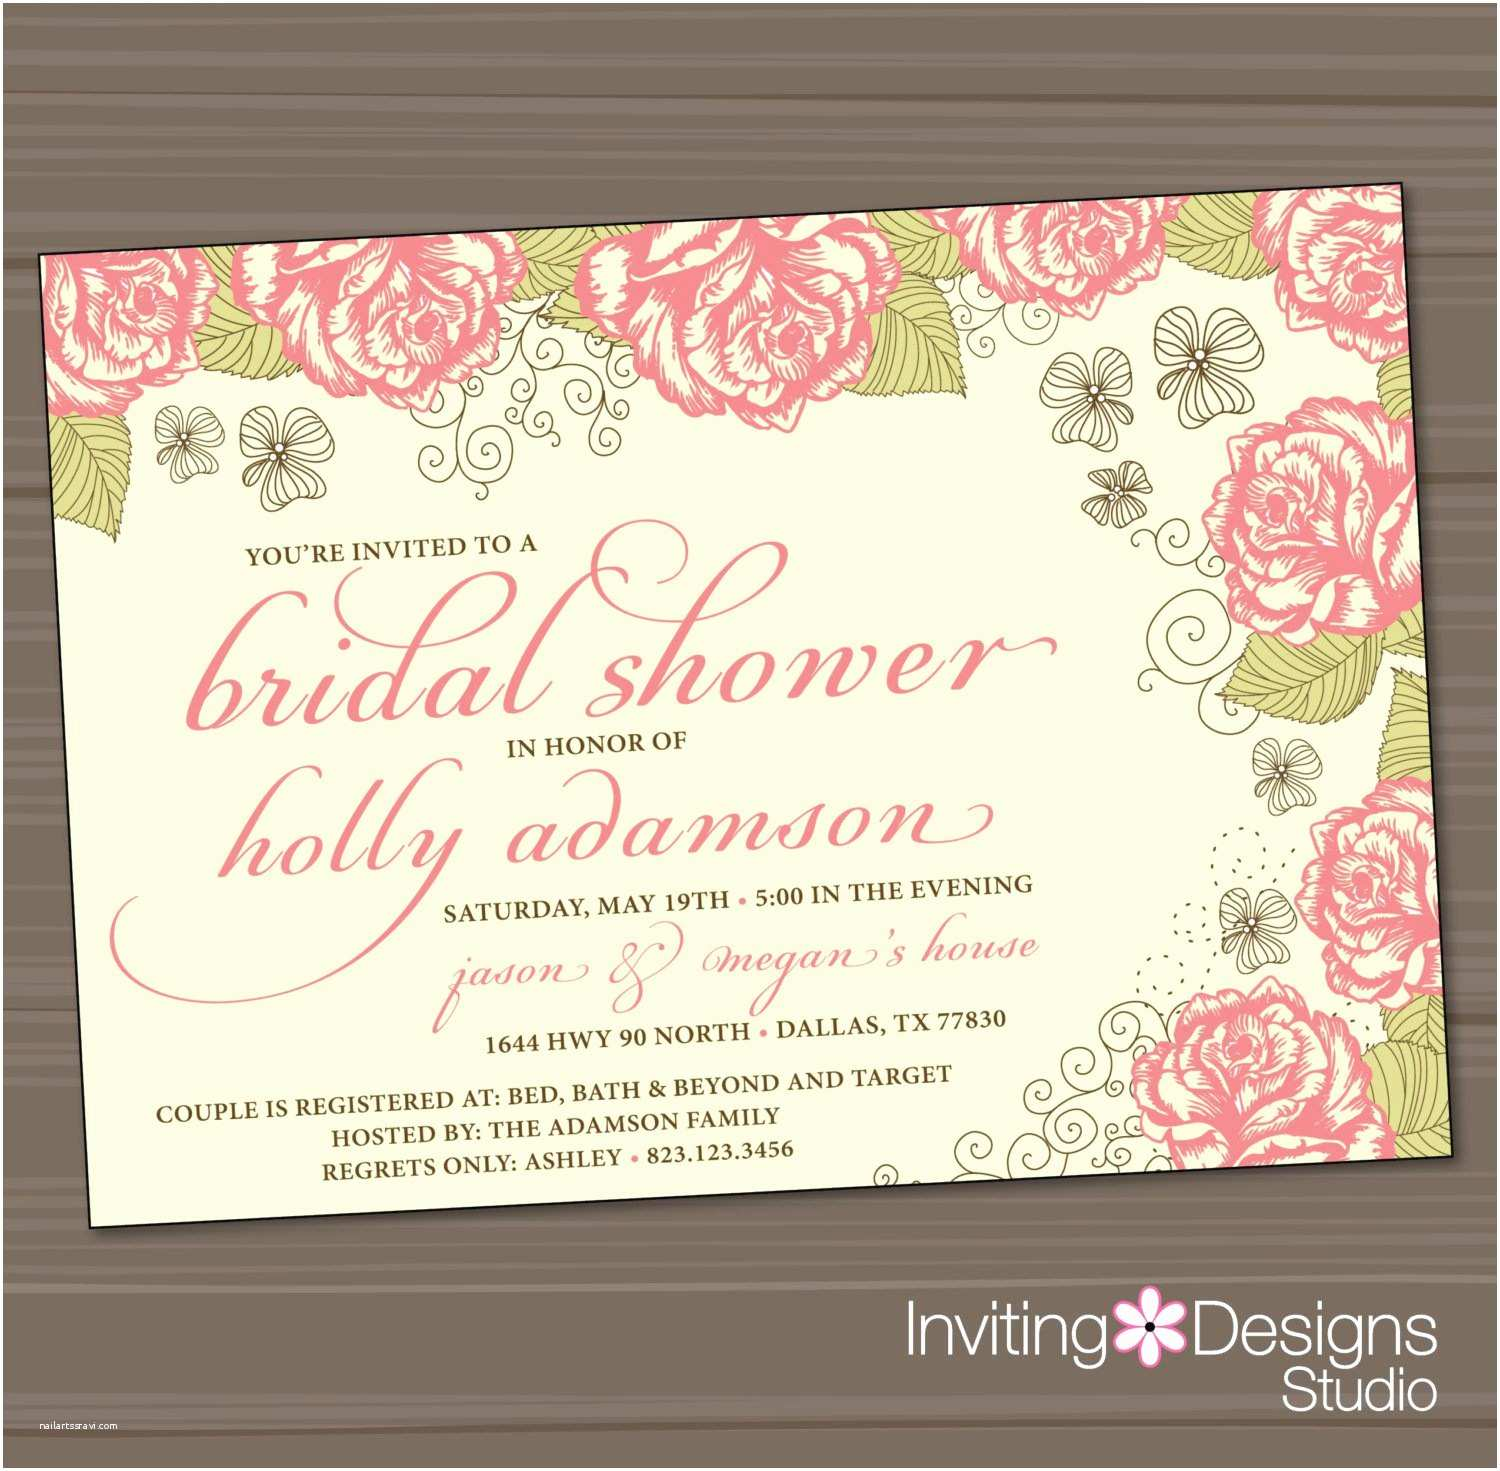 Invitations for Bridal Shower Bridal Shower Invitations Inexpensive Bridal Shower